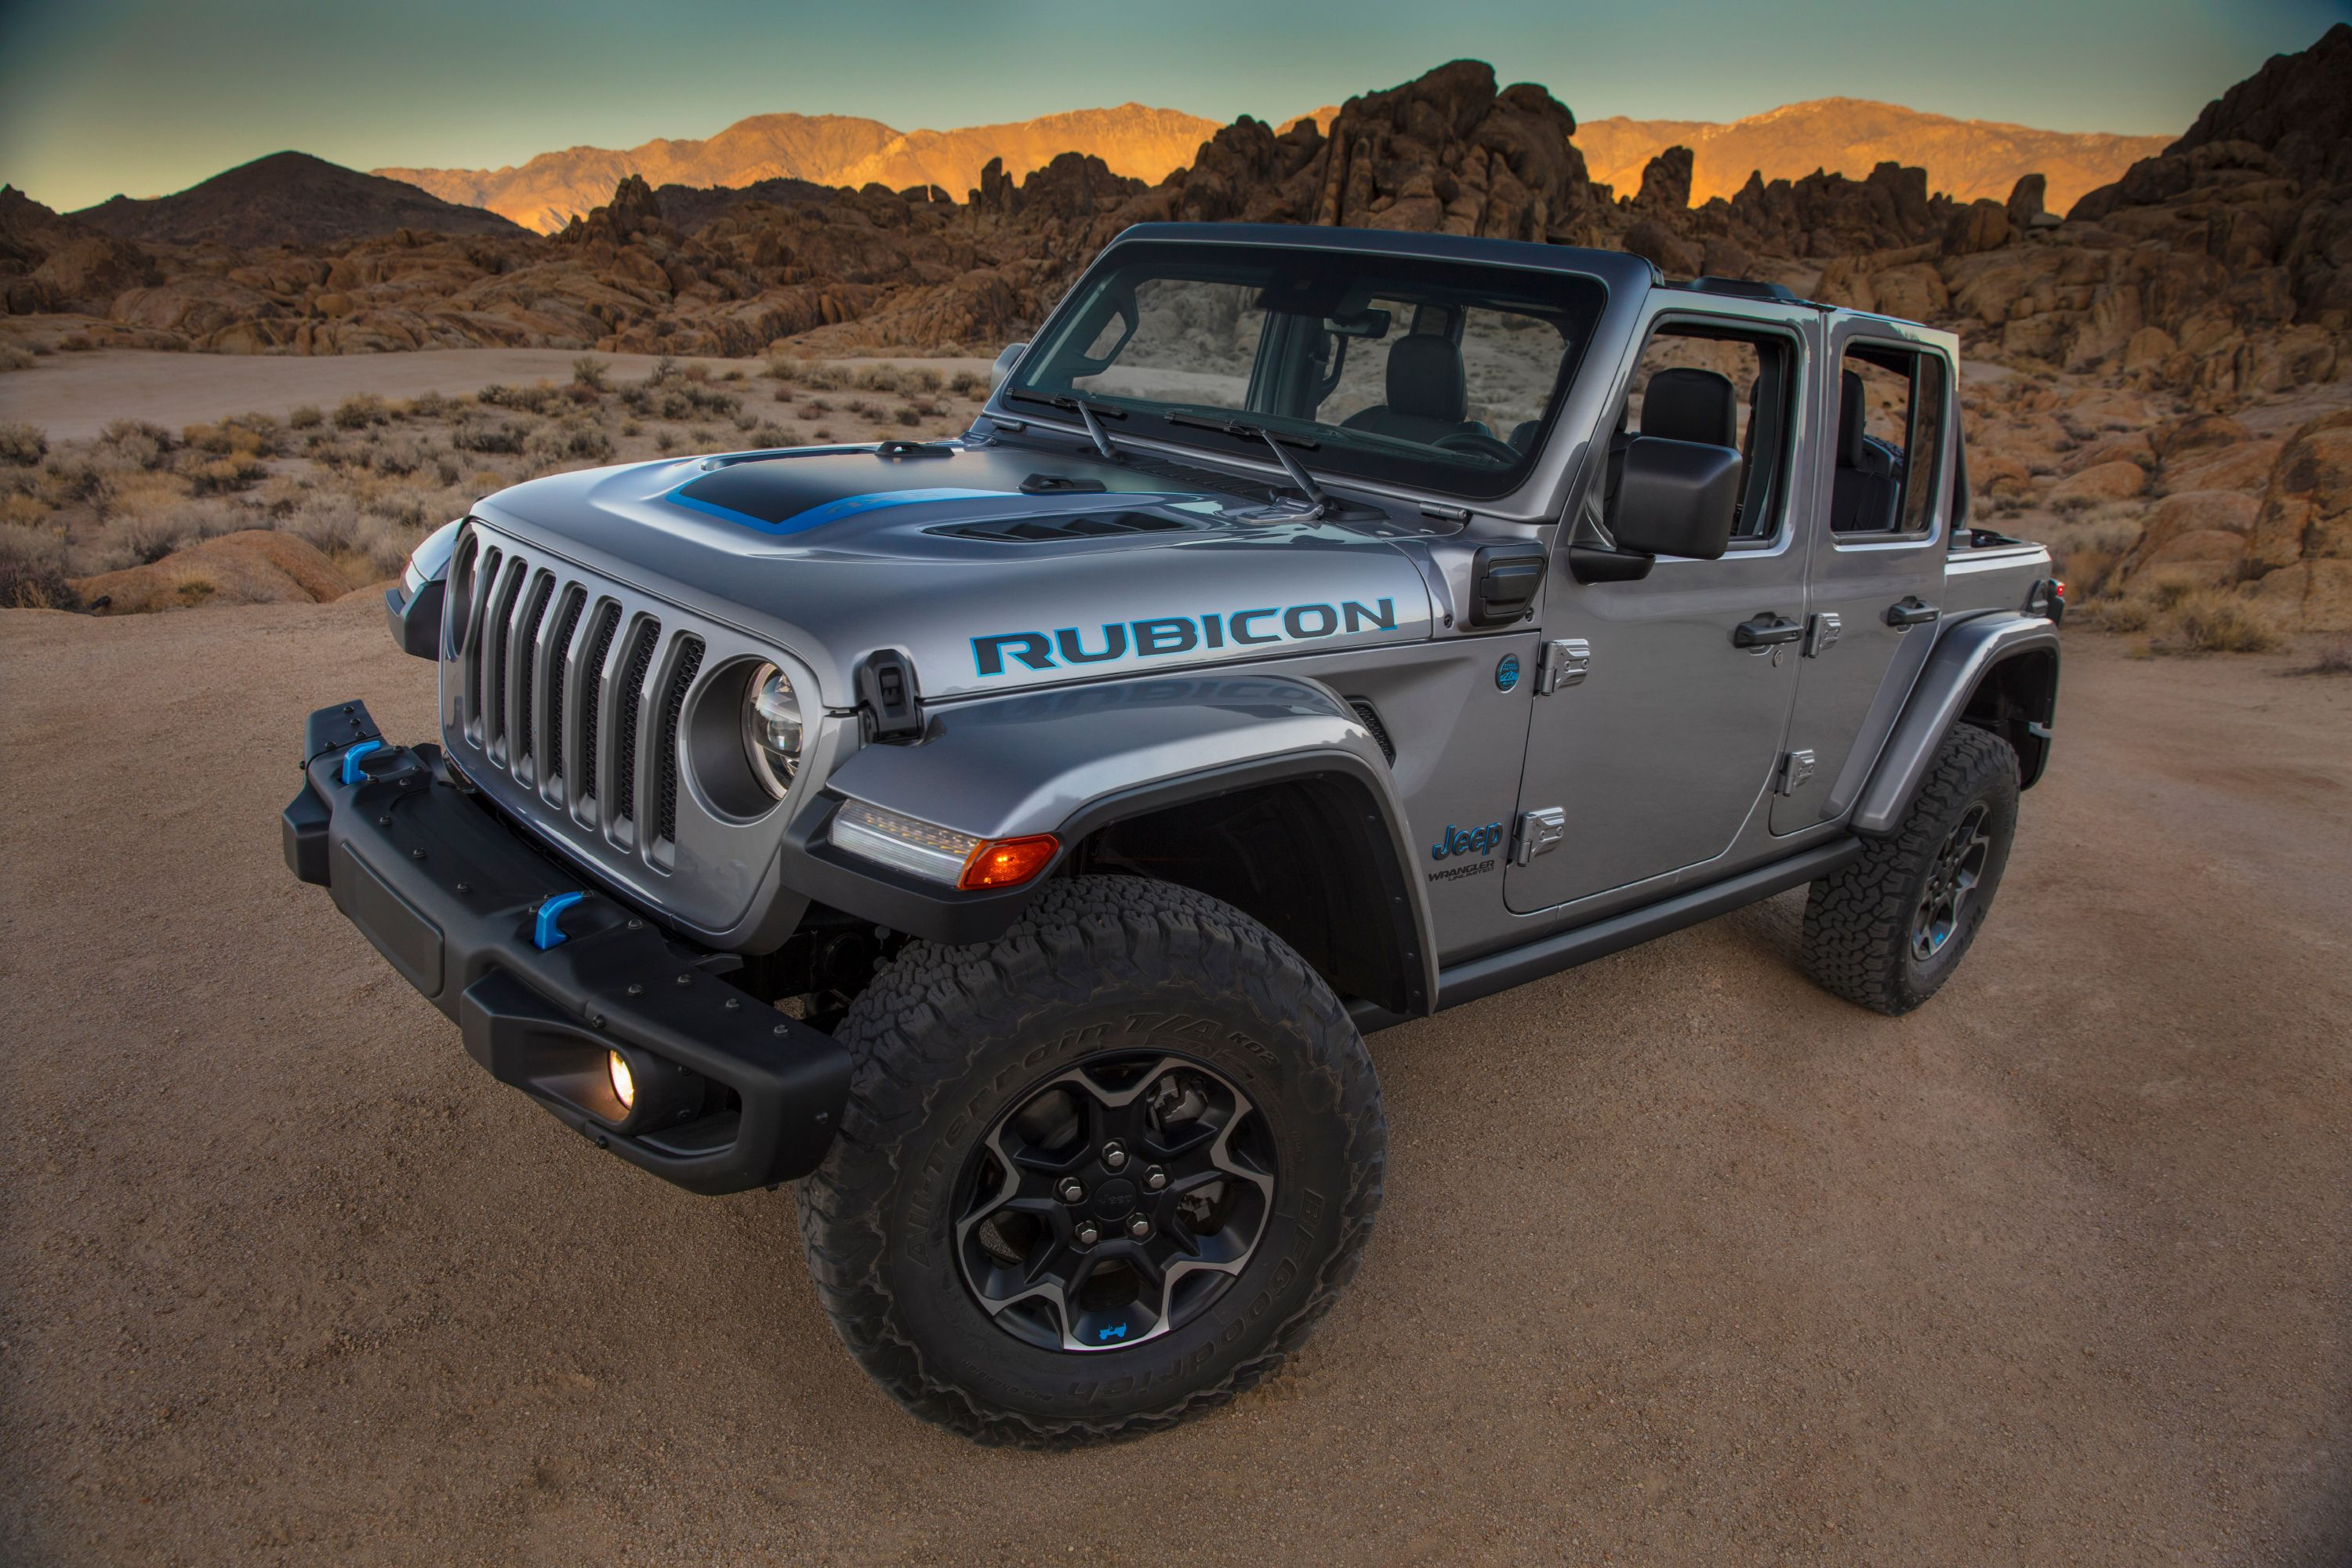 The Hybrid Jeep Wrangler 4xe Is The Most Powerful Wrangler Yet